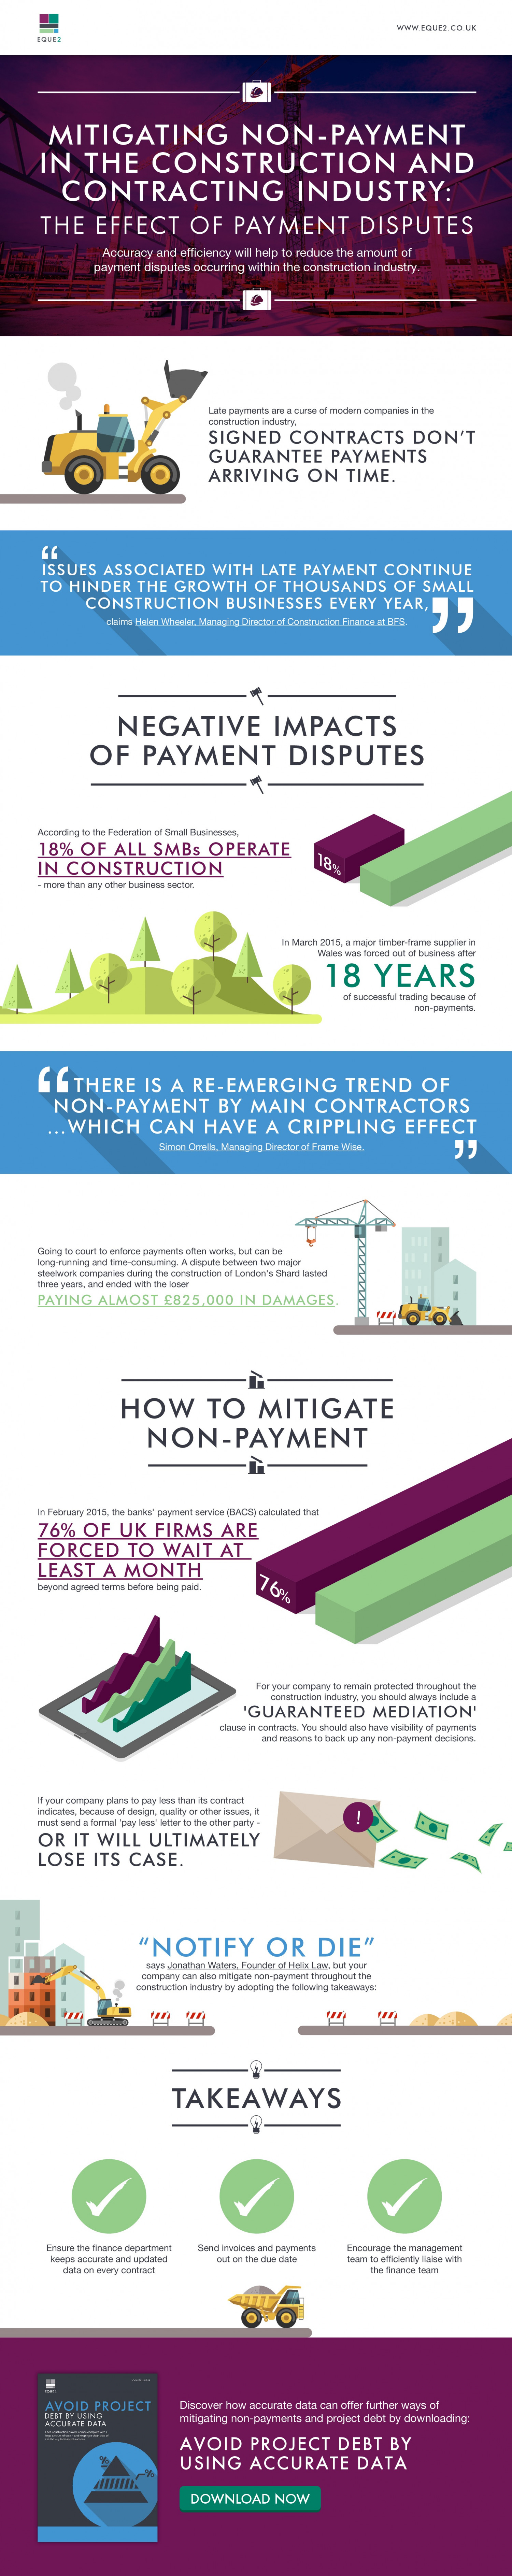 Mitigating Non-Payment in the Construction and Contracting Industry: The Effect of Payment Disputes  Infographic